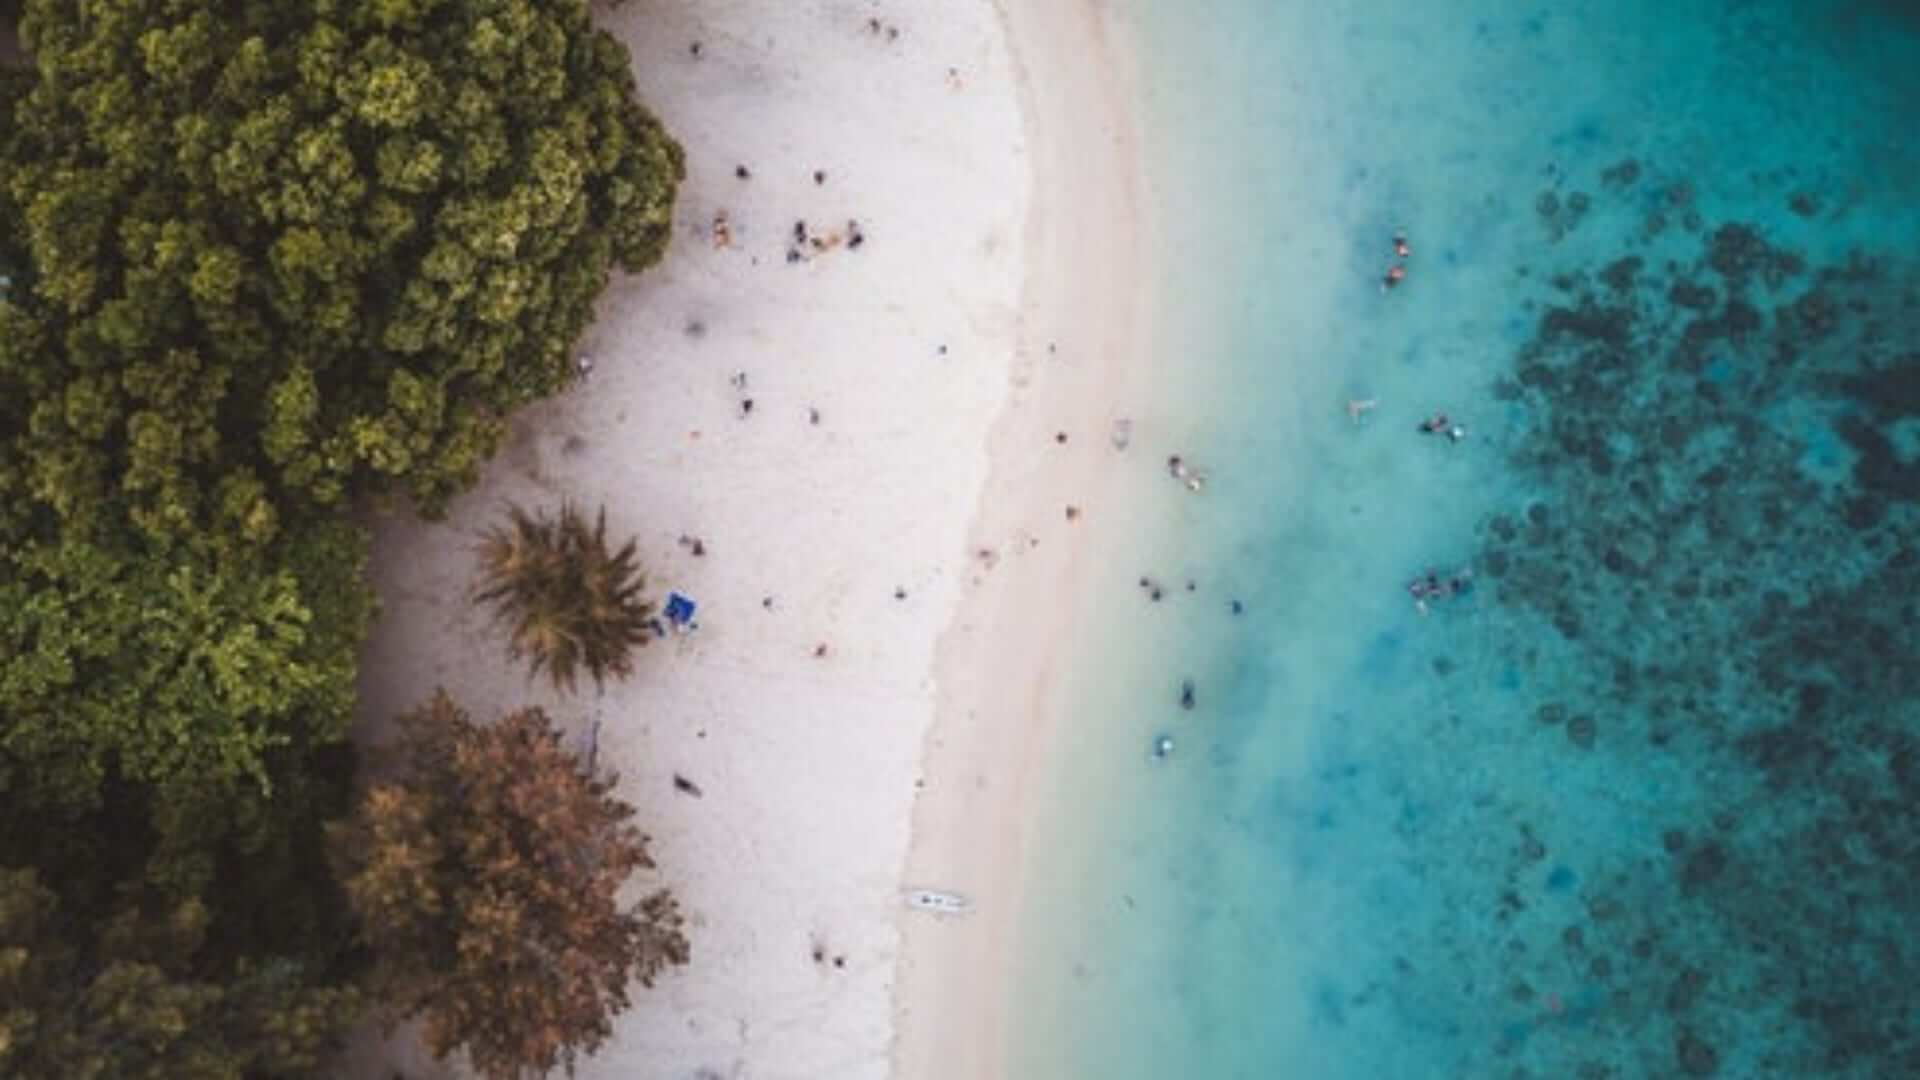 Aerial photo of a white beach with green trees and blue water with people in Malaysia.